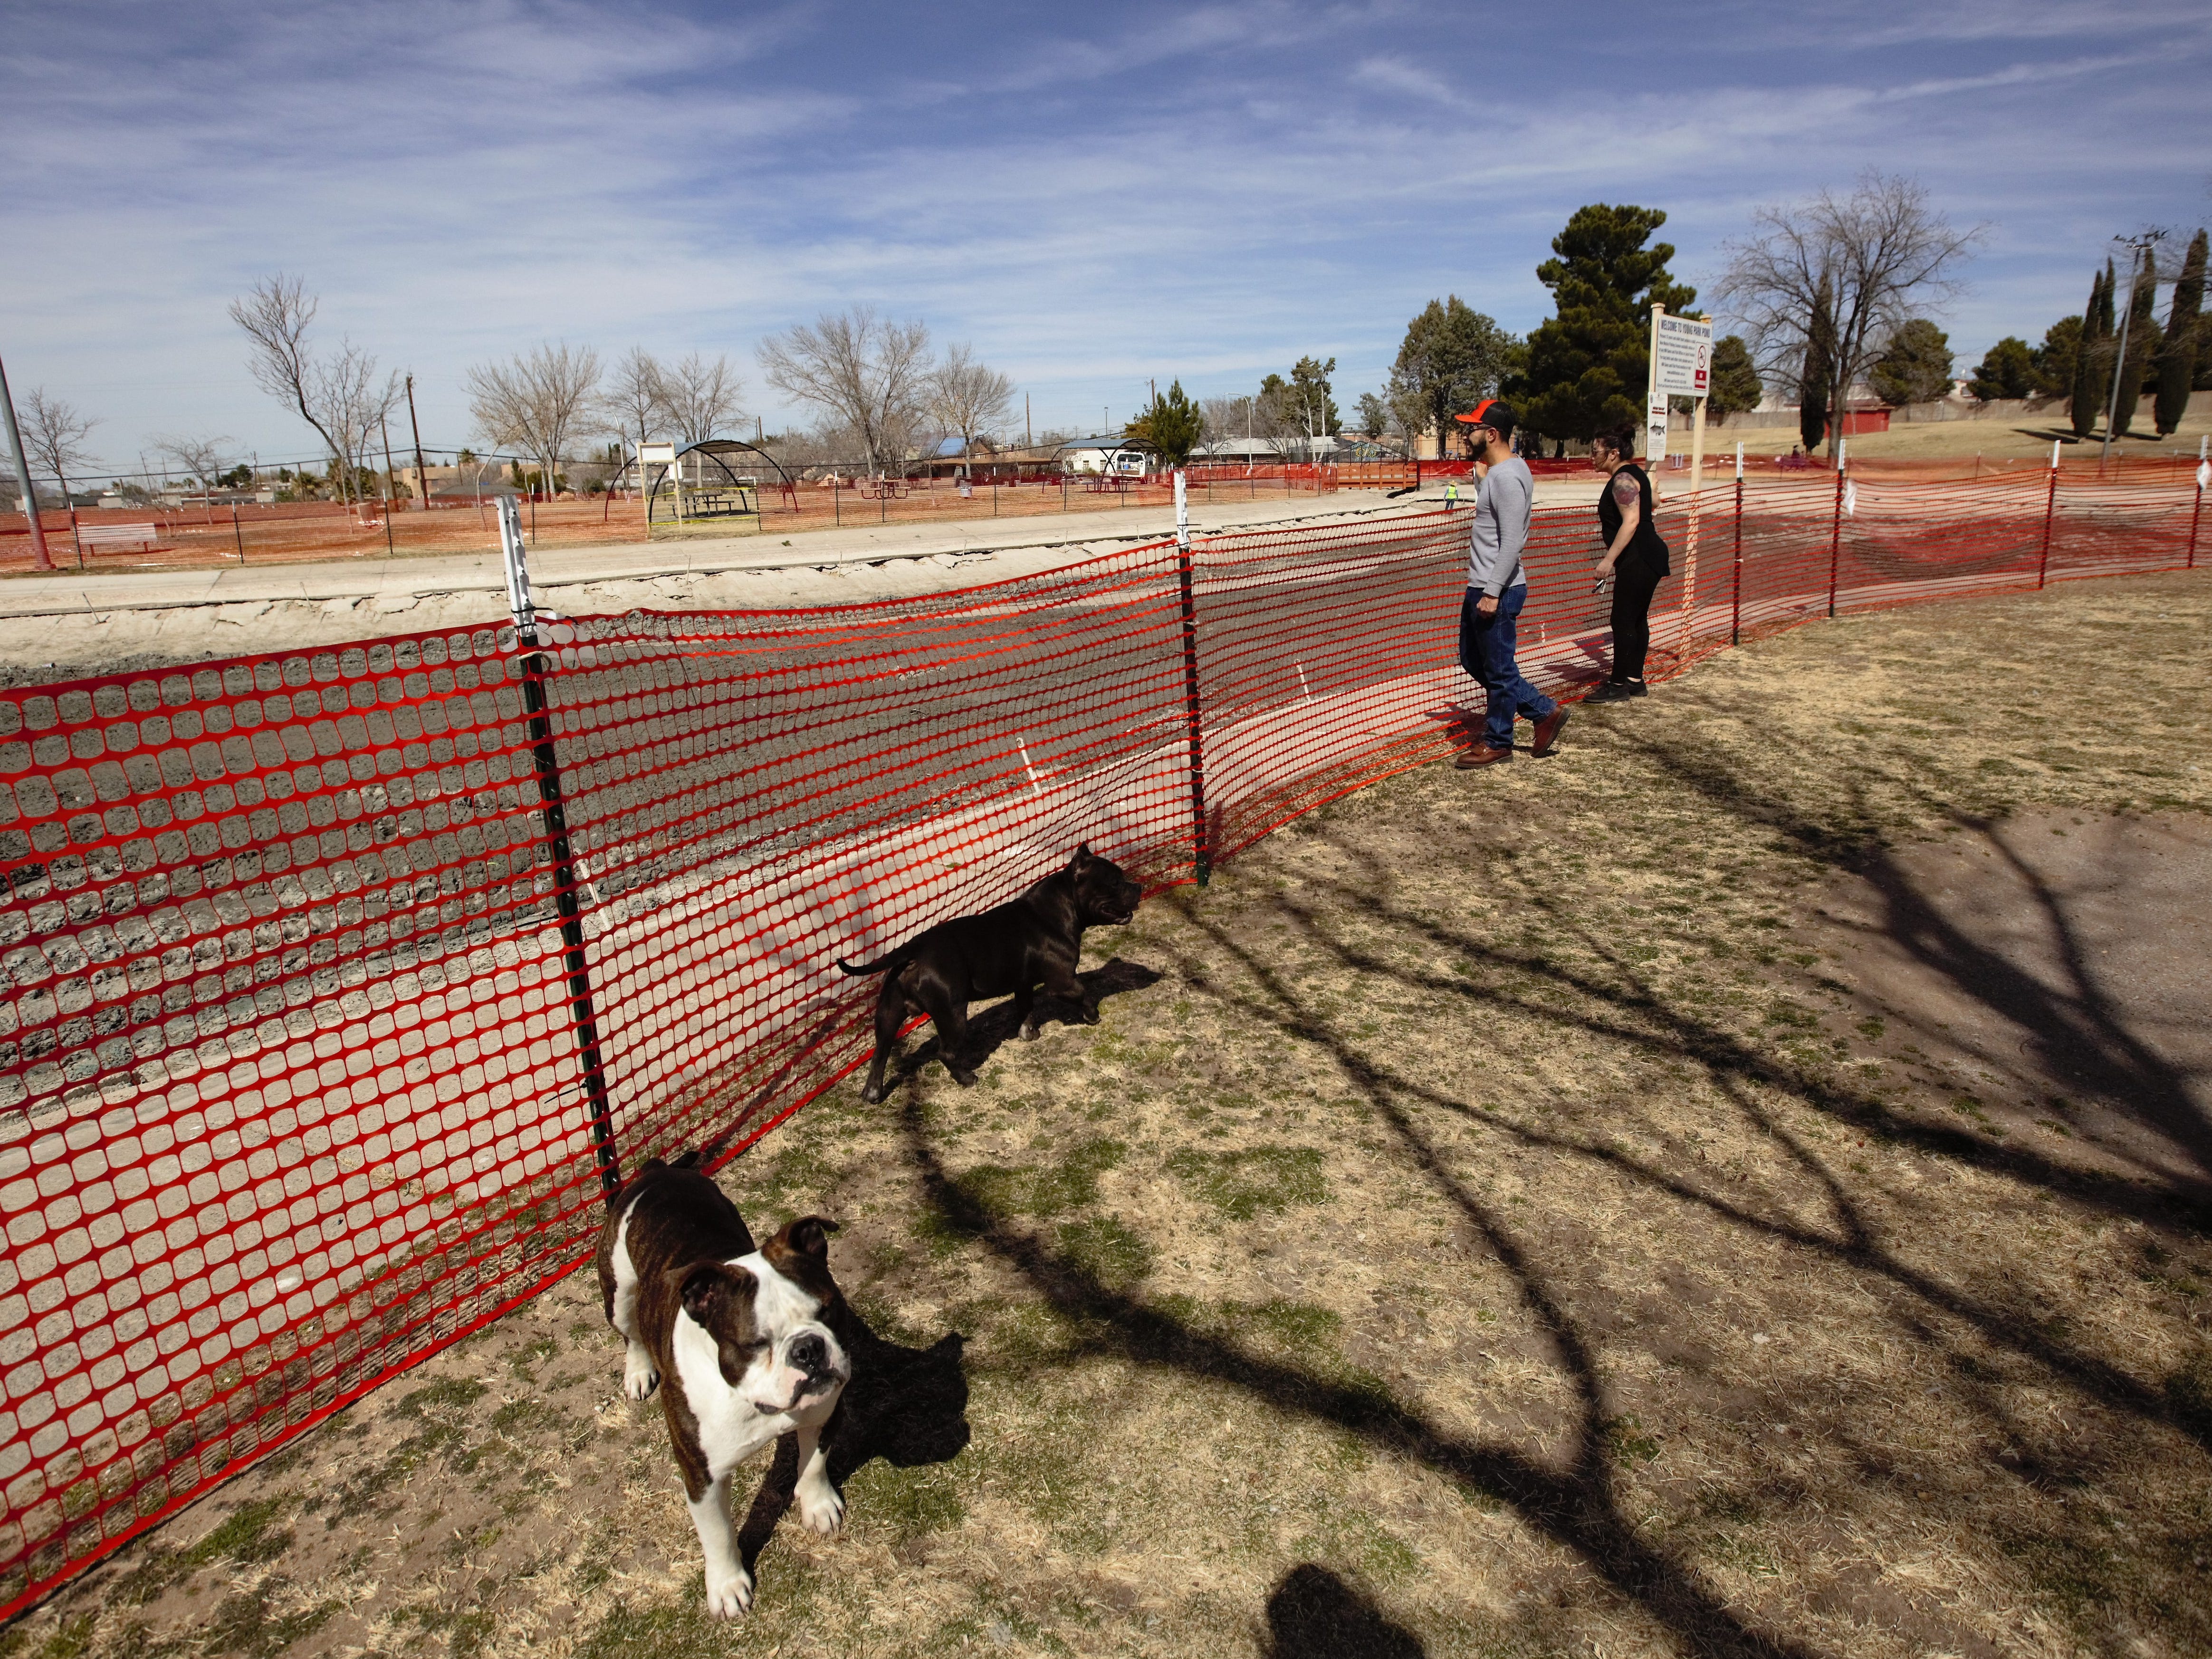 Cindy Flores, right, and Raymond Baca, both of Las Cruces, survey an ongoing Young Park Pond restoration on Monday, Feb. 25, 2019, as their dogs, Chopper and Kodak, walk nearby.